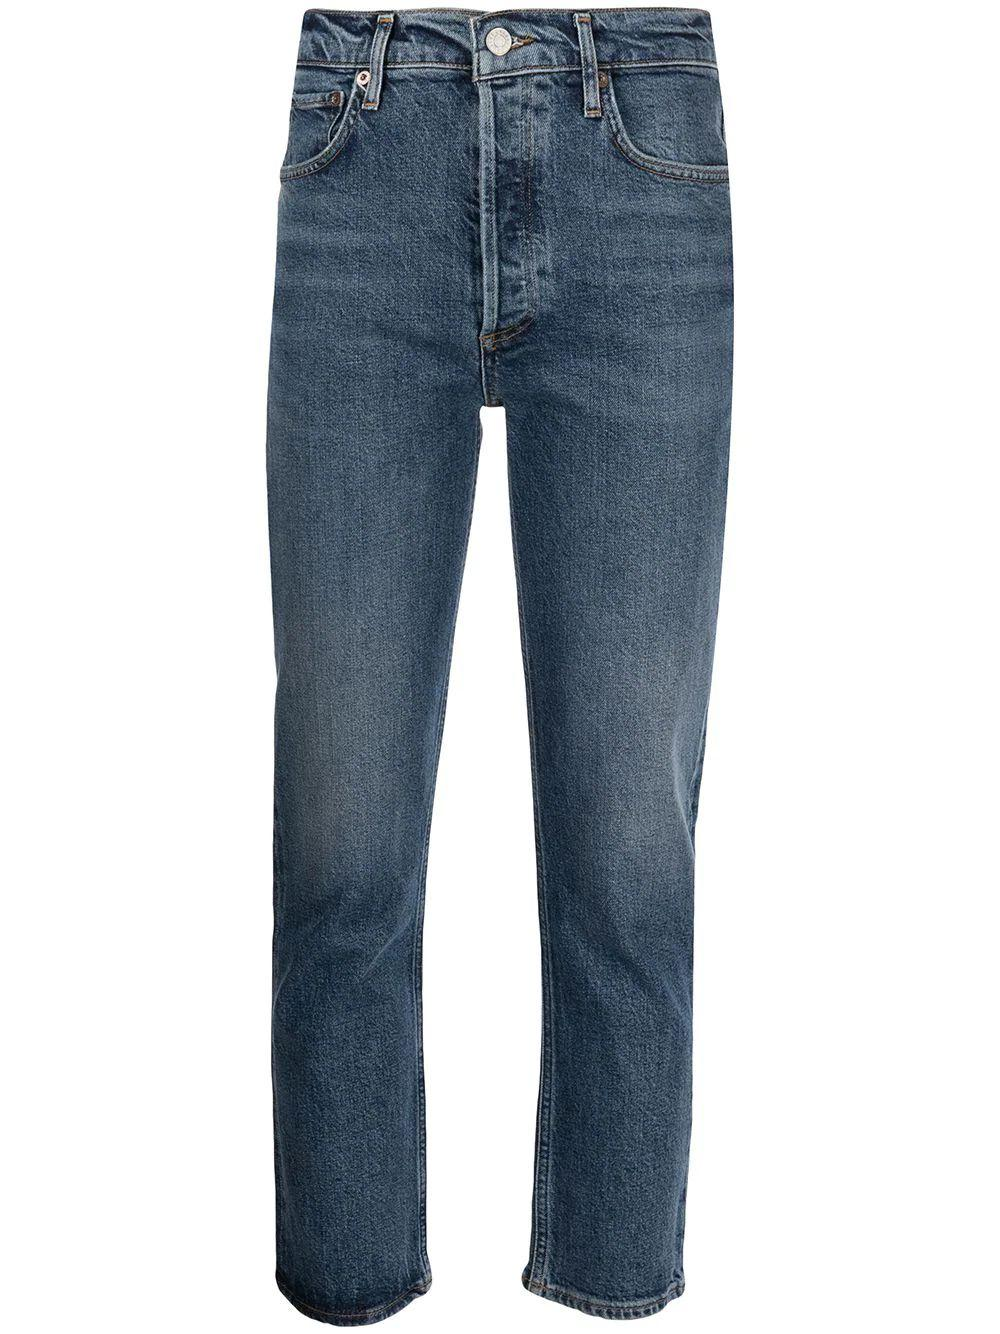 Riley Cropped Straight Leg Jean Item # A056D-1255